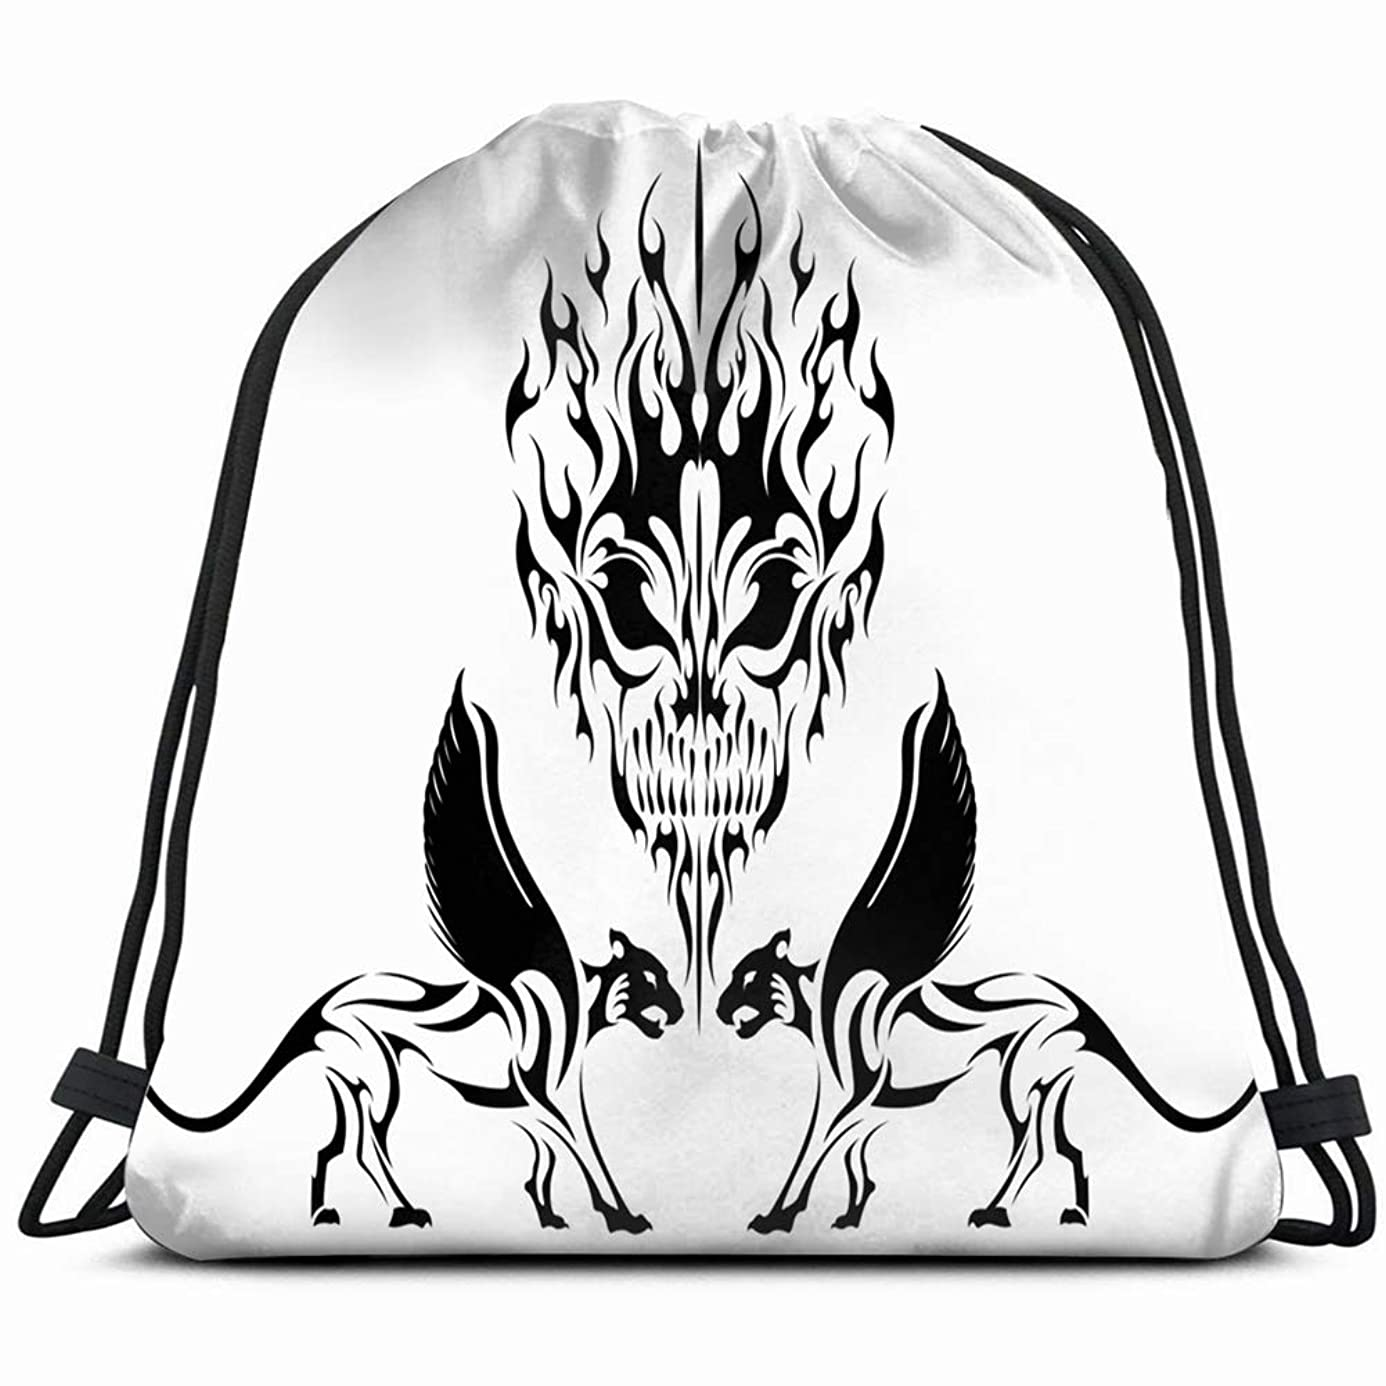 fire head rock big cats wings signs symbols Drawstring Backpack Gym Sack Lightweight Bag Water Resistant Gym Backpack for Women&Men for Sports,Travelling,Hiking,Camping,Shopping Yoga